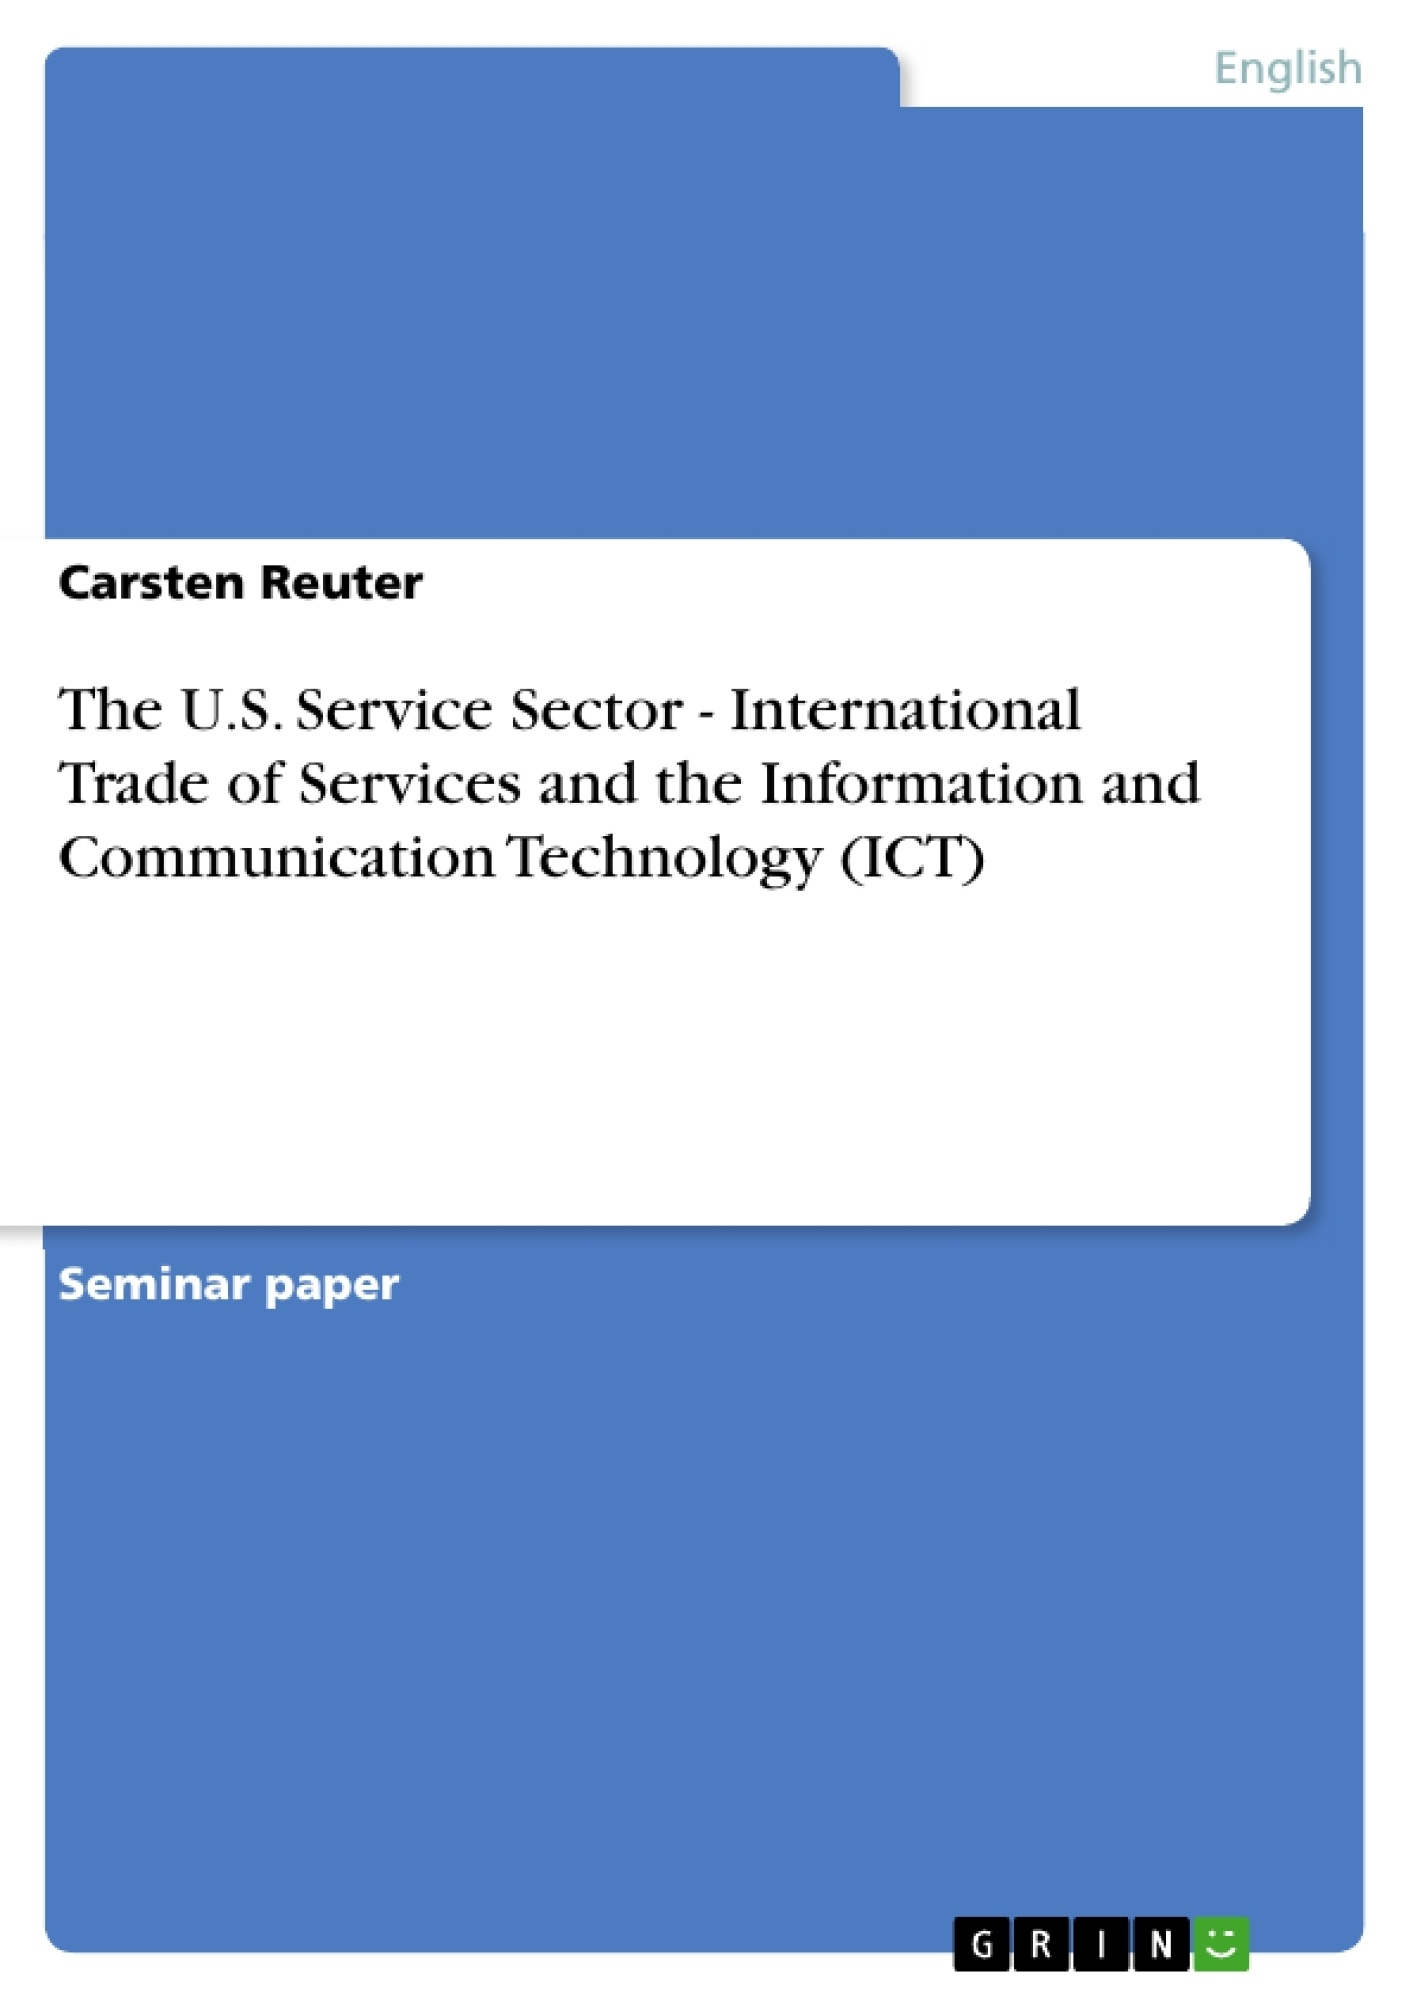 Title: The U.S. Service Sector - International Trade of Services and the Information and Communication Technology (ICT)